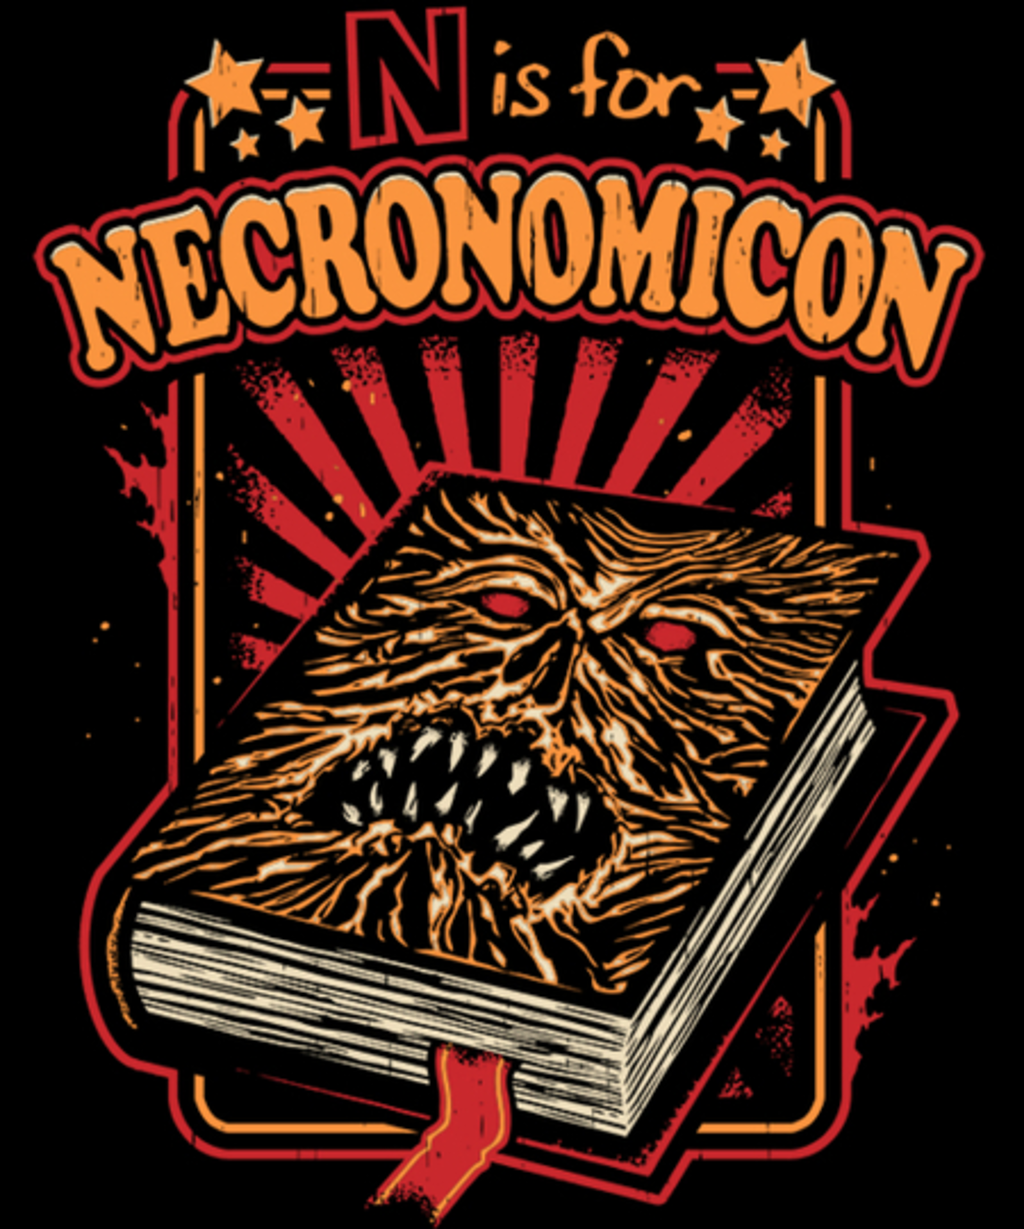 Qwertee: N is for Necronomicon